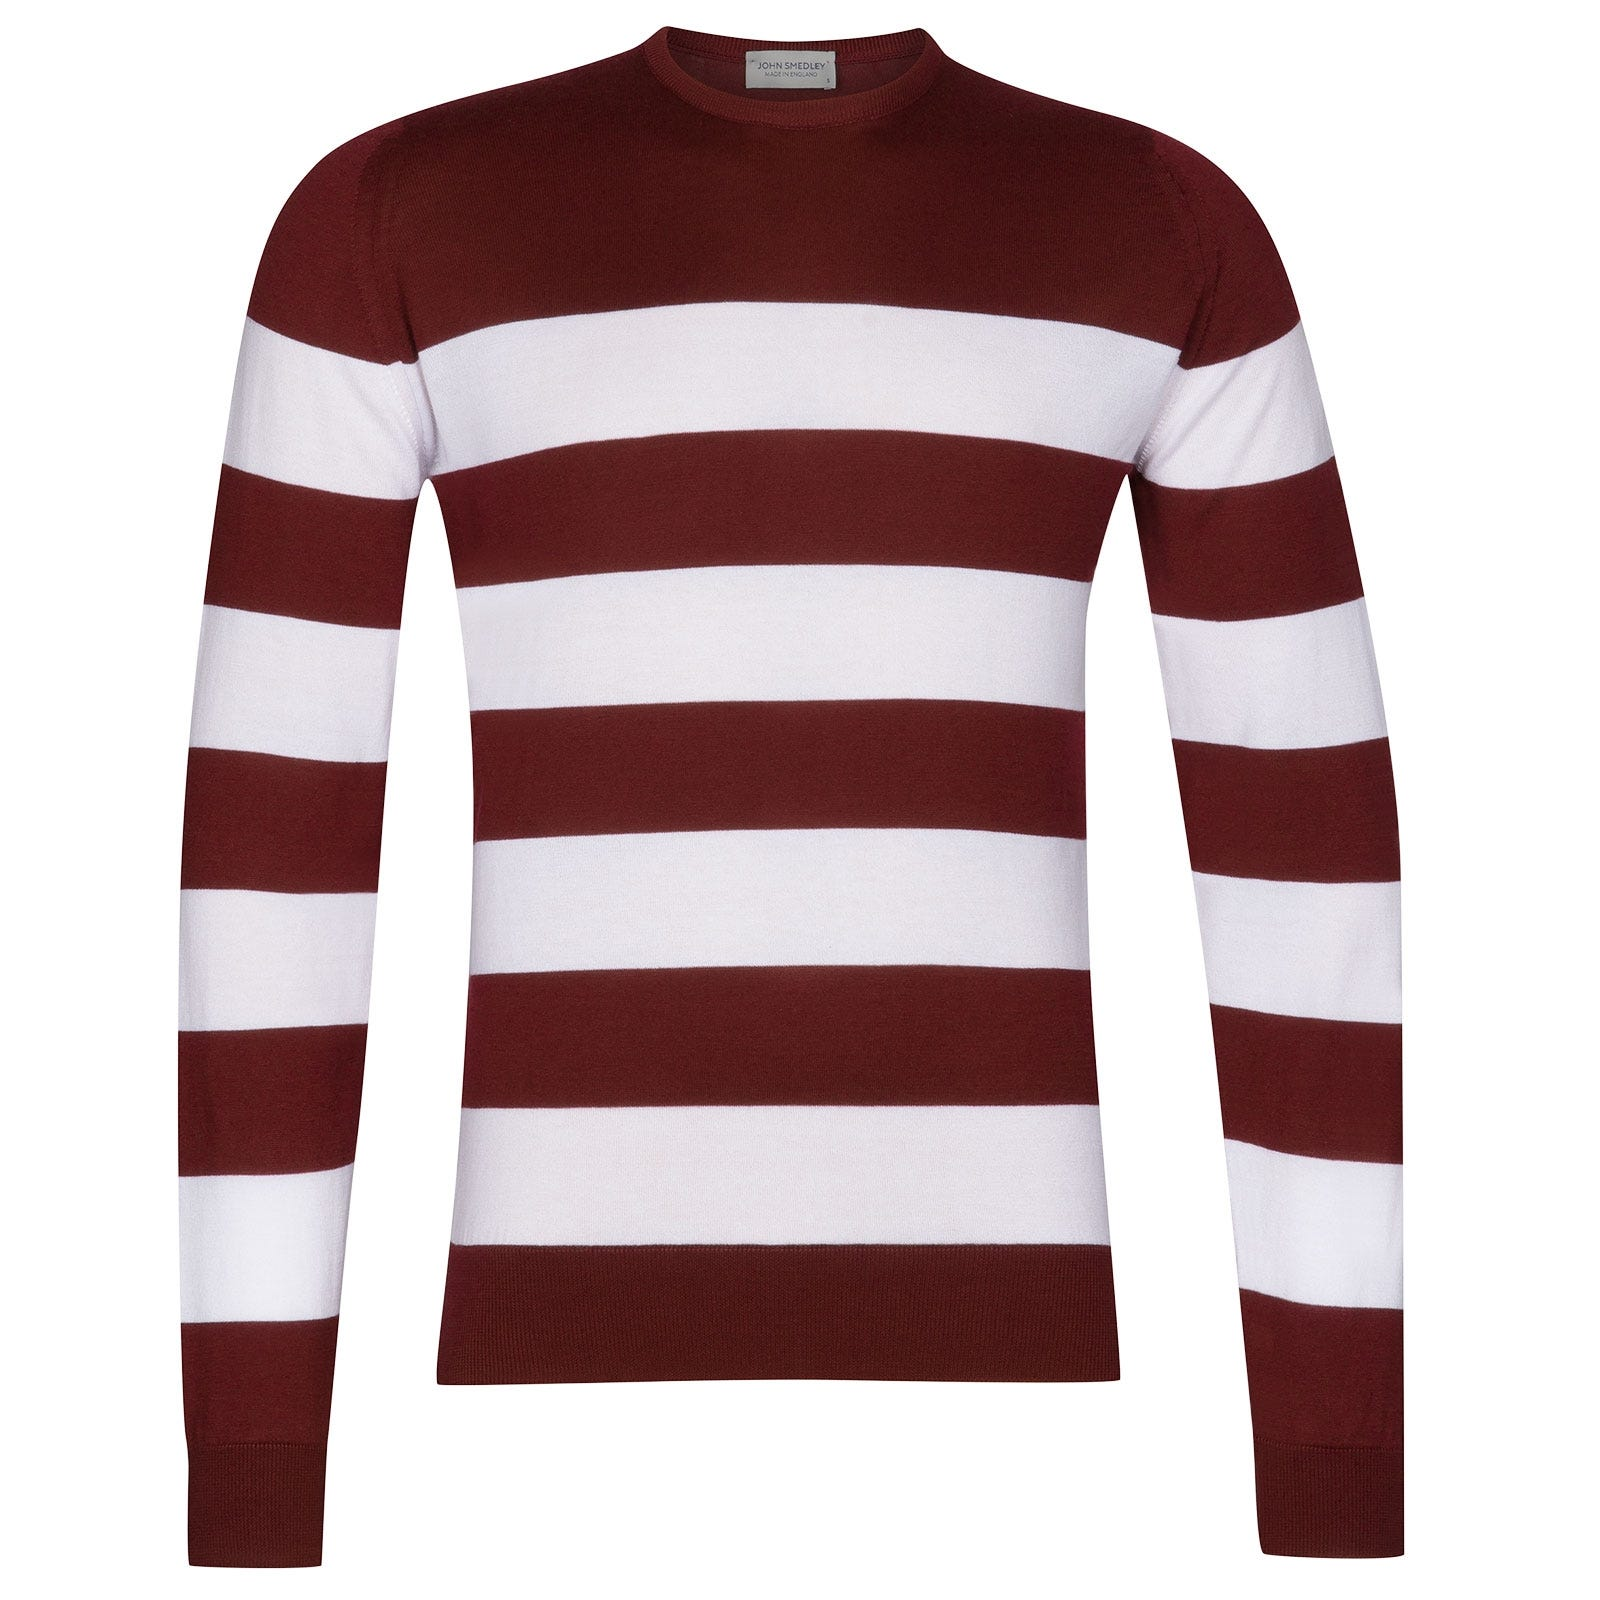 John Smedley Raydon Sea Island Cotton Pullover in Burgundy Grain-XXL